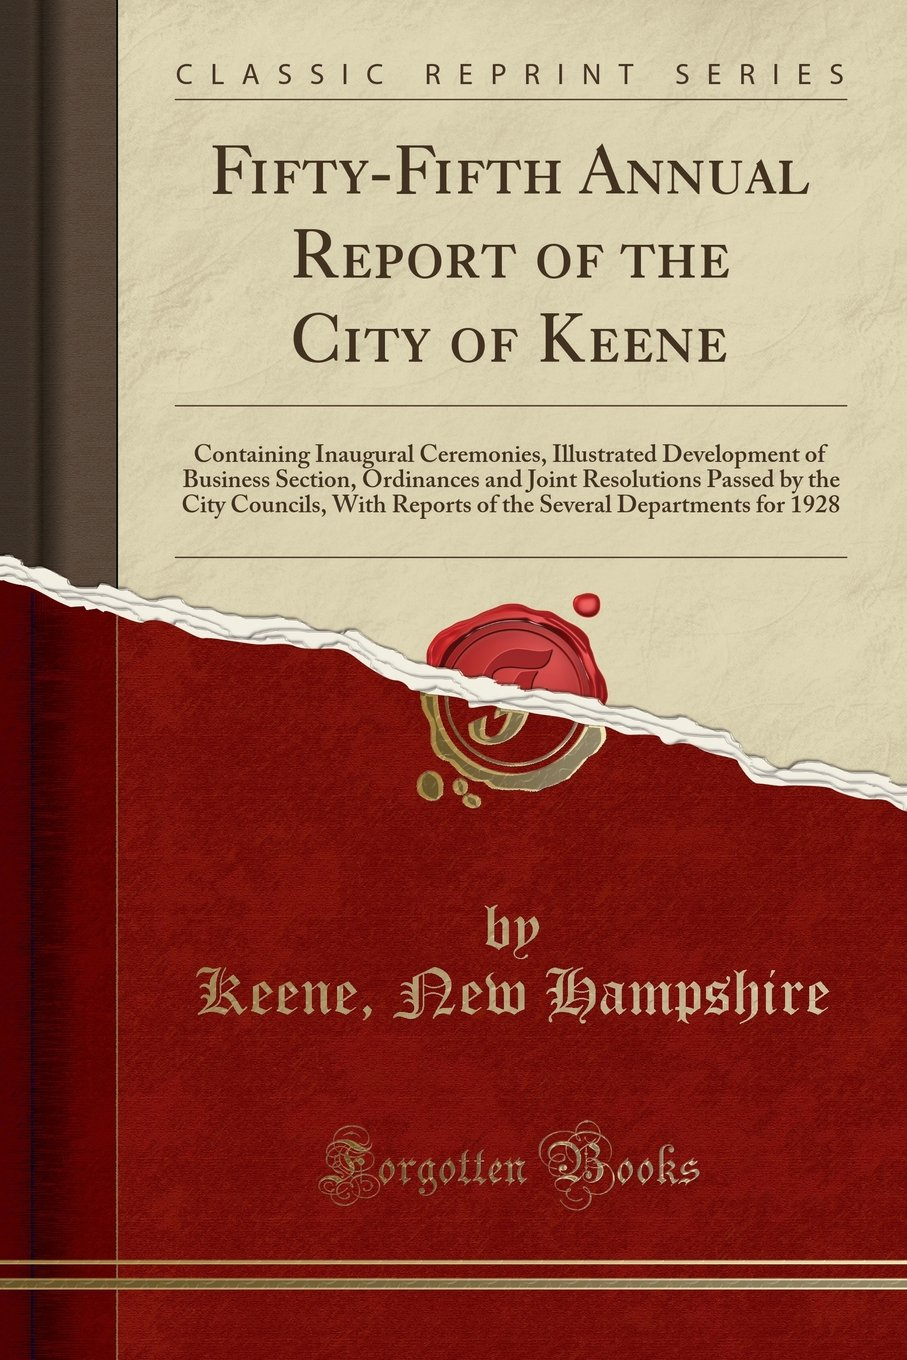 Fifty-Fifth Annual Report of the City of Keene: Containing Inaugural Ceremonies, Illustrated Development of Business Section, Ordinances and Joint Departments for 1928 (Classic Reprint) PDF